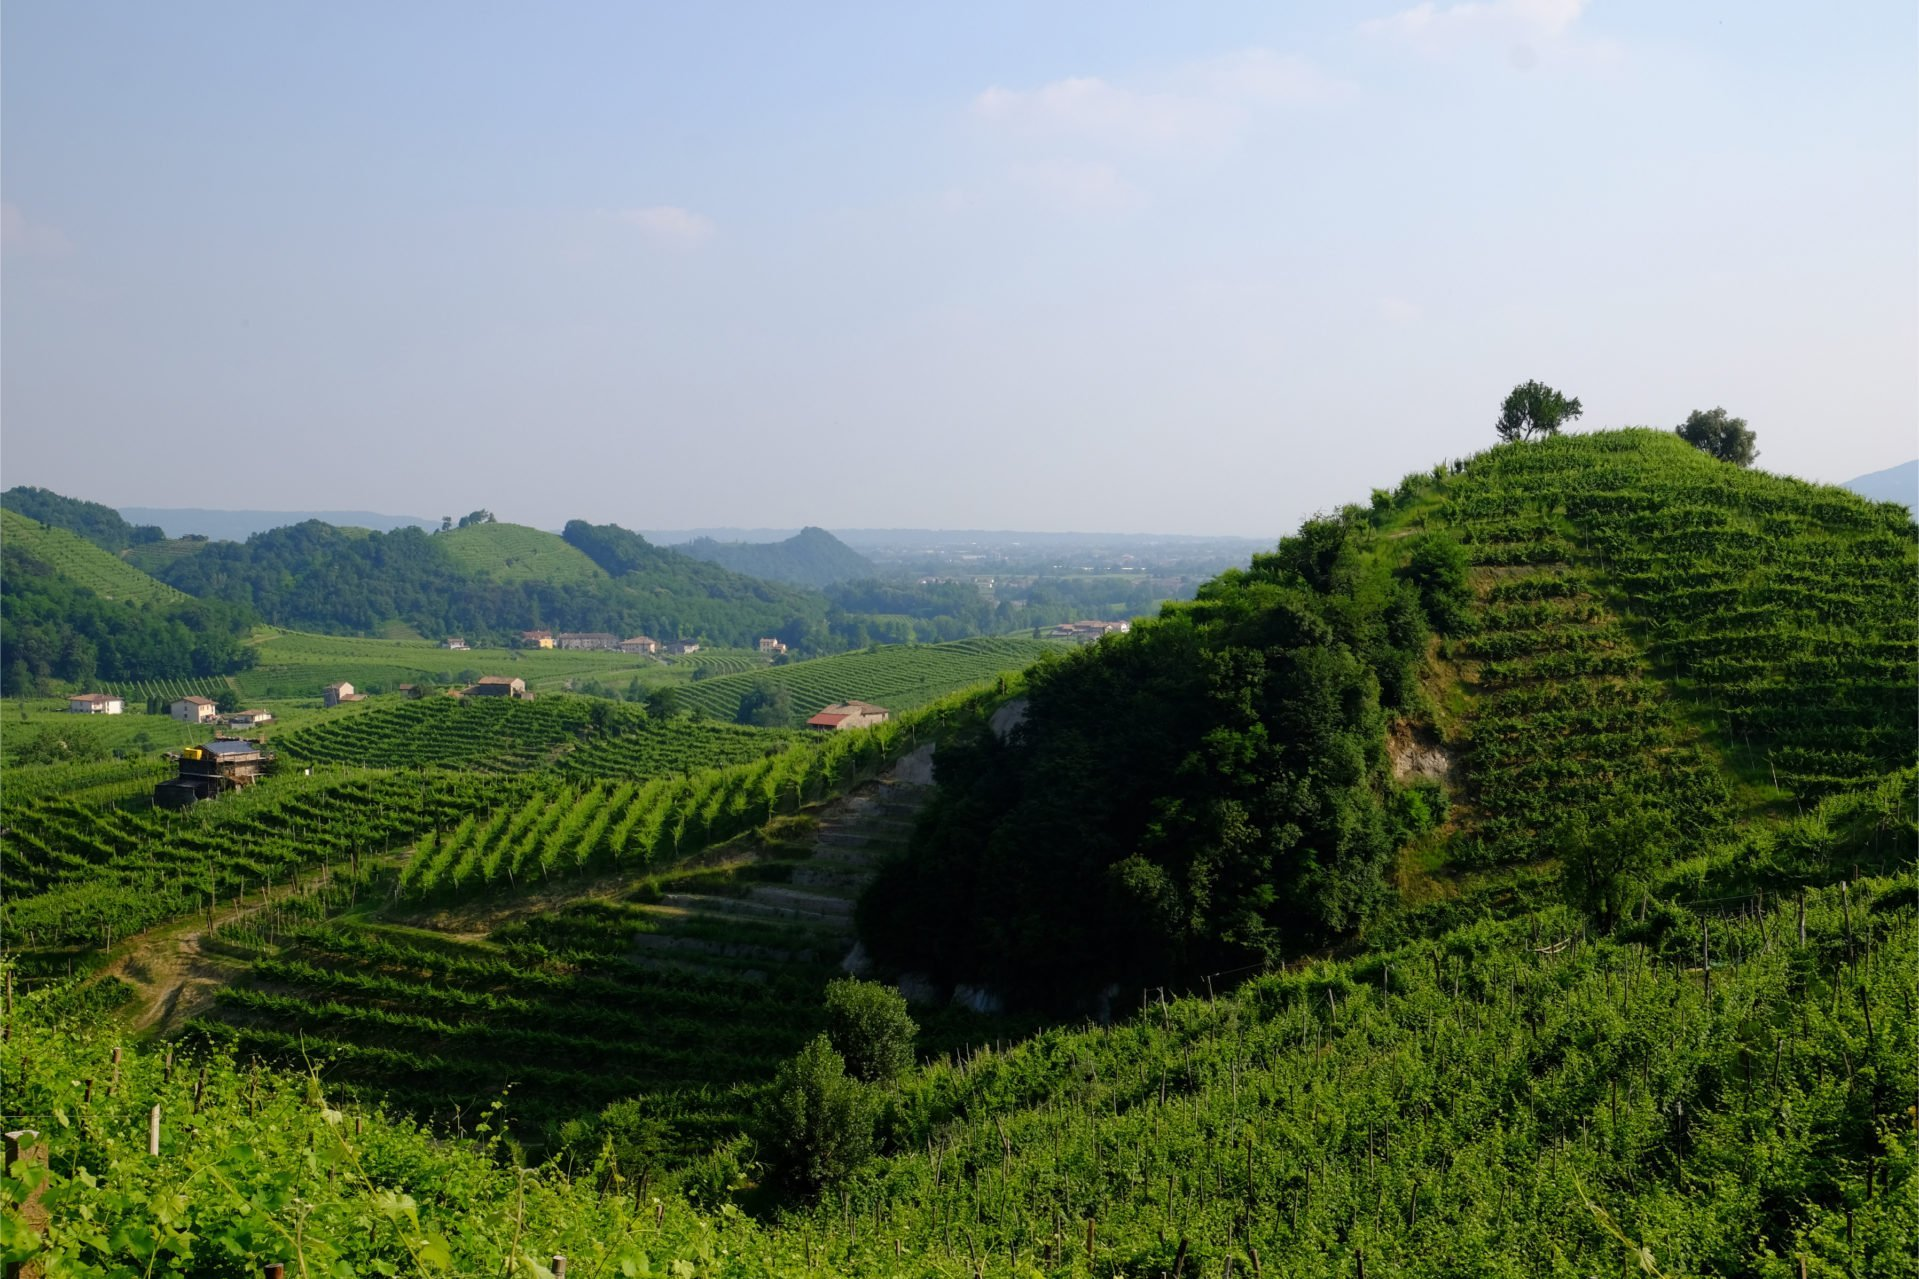 Image of italian hills where prosecco grapes are grown